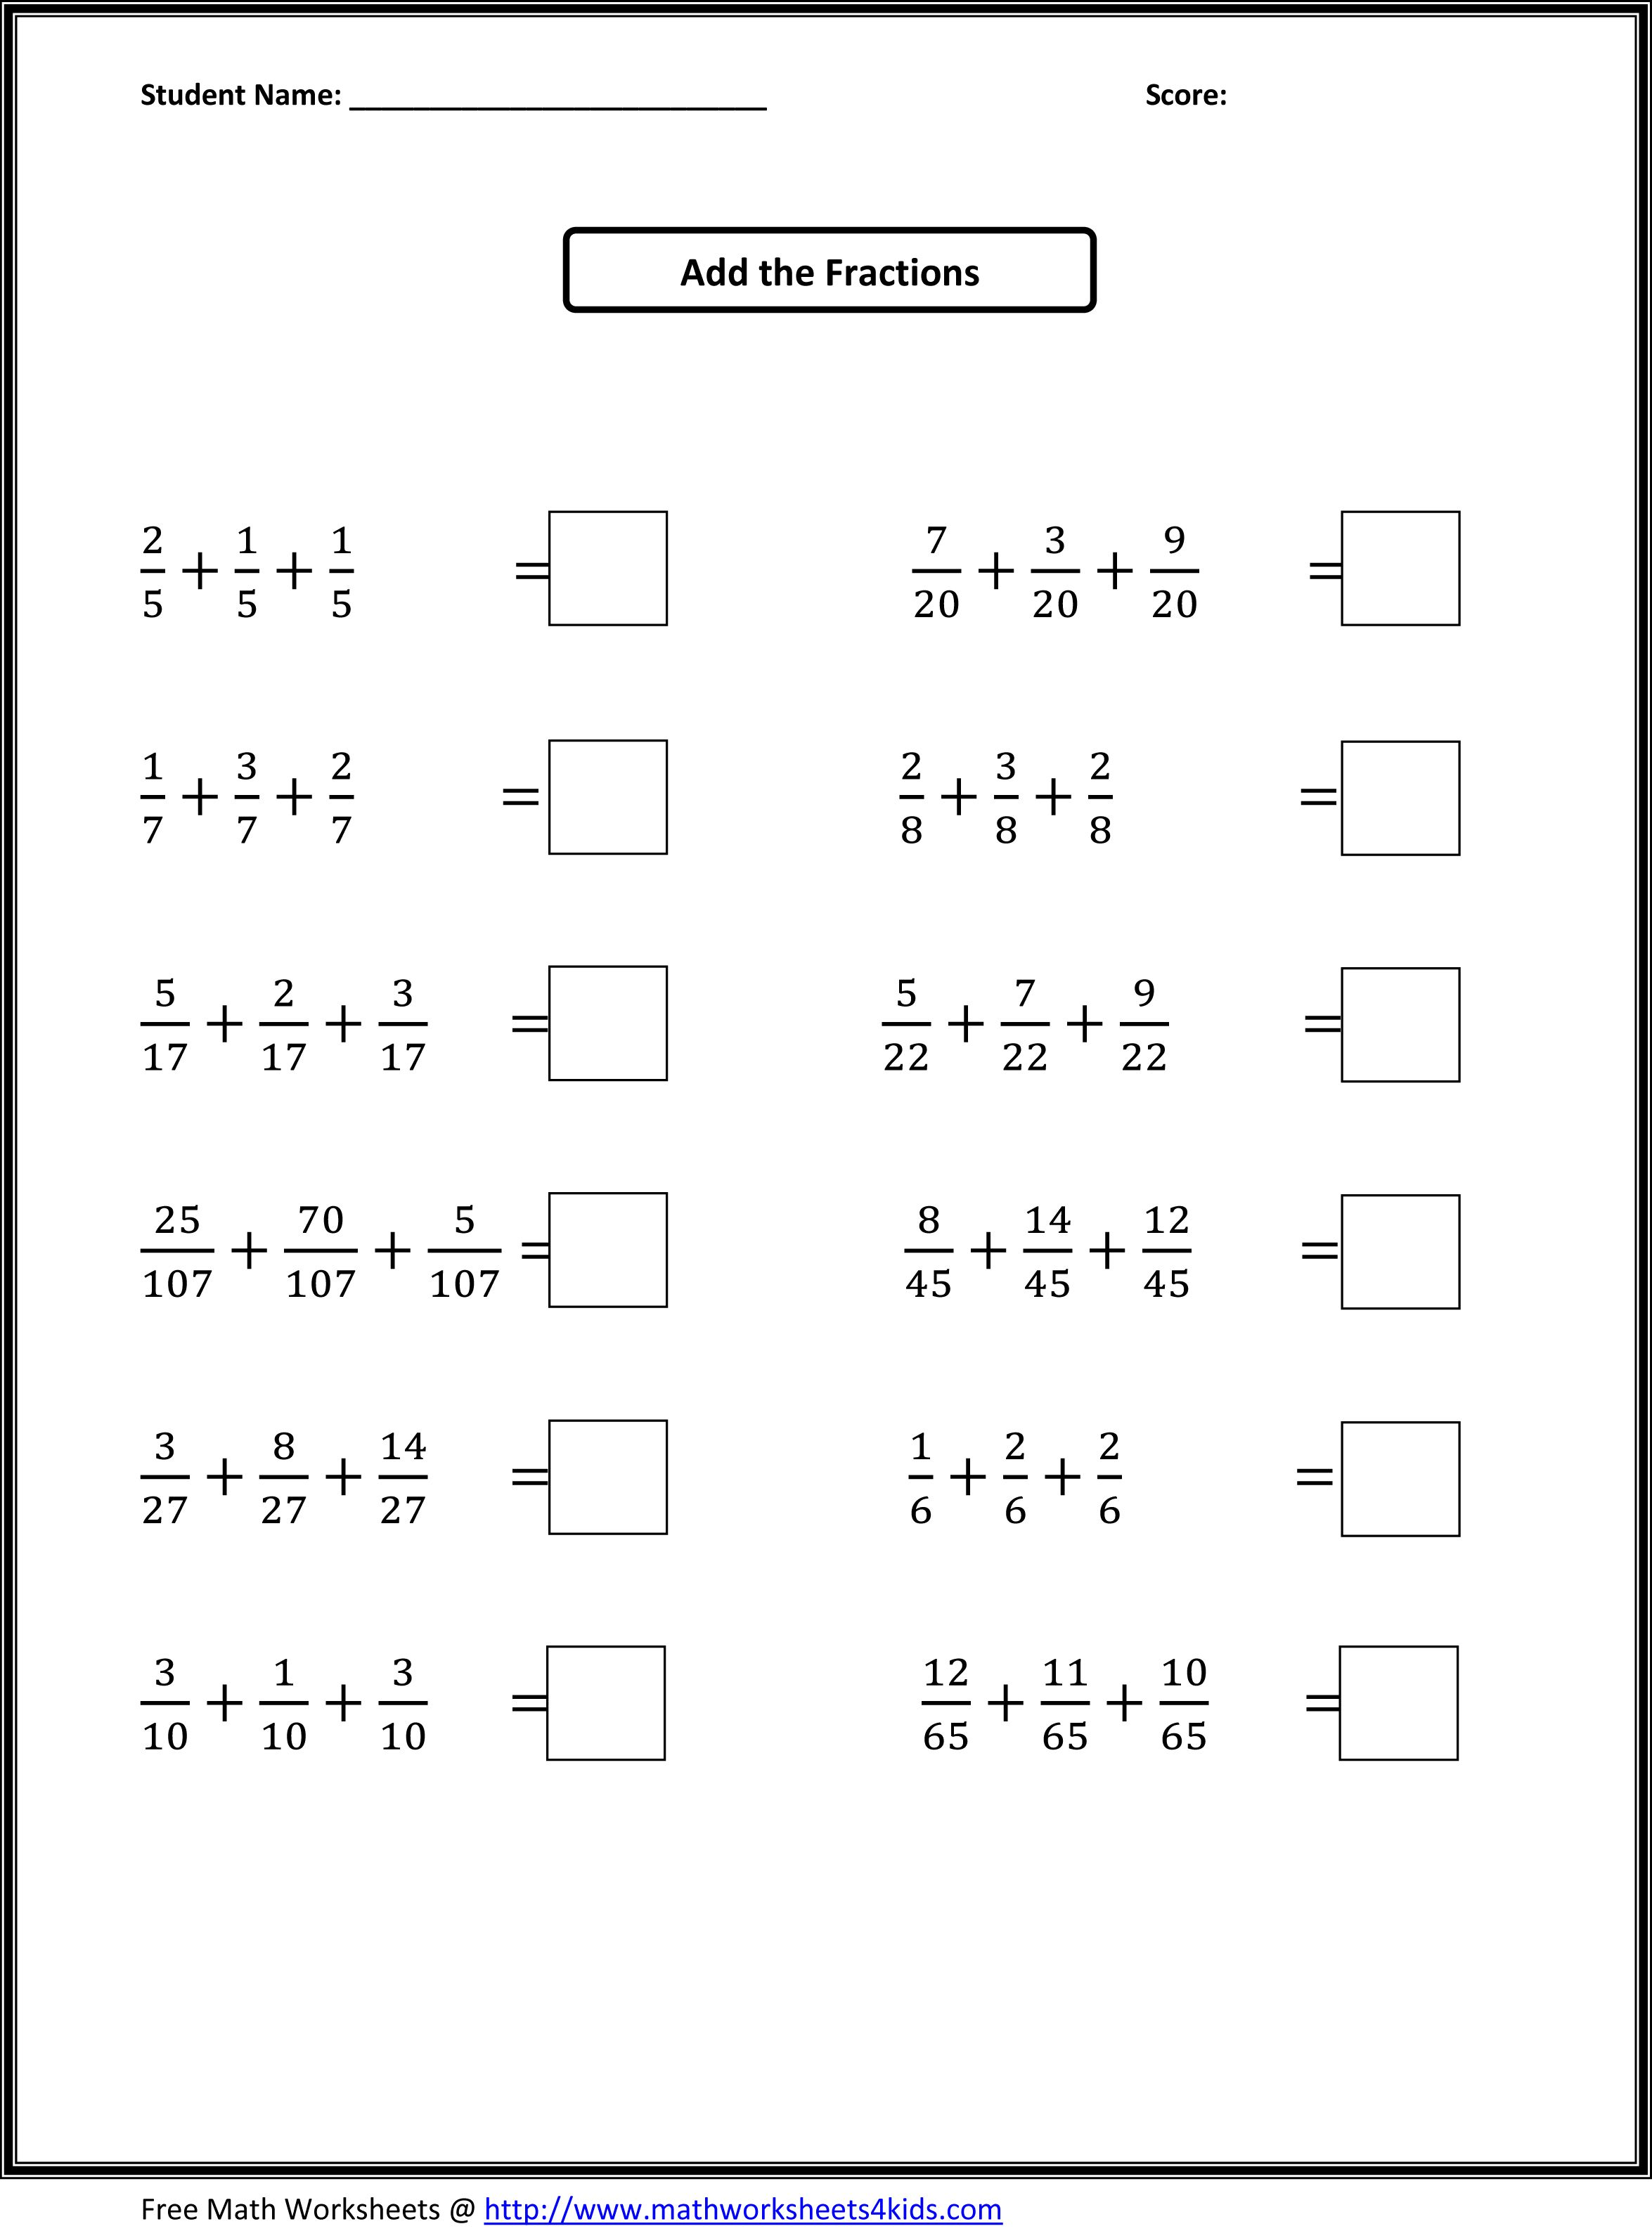 Worksheets Math For 4 Grade Worksheets 1000 images about math worksheets on pinterest 4th grade geometry and math